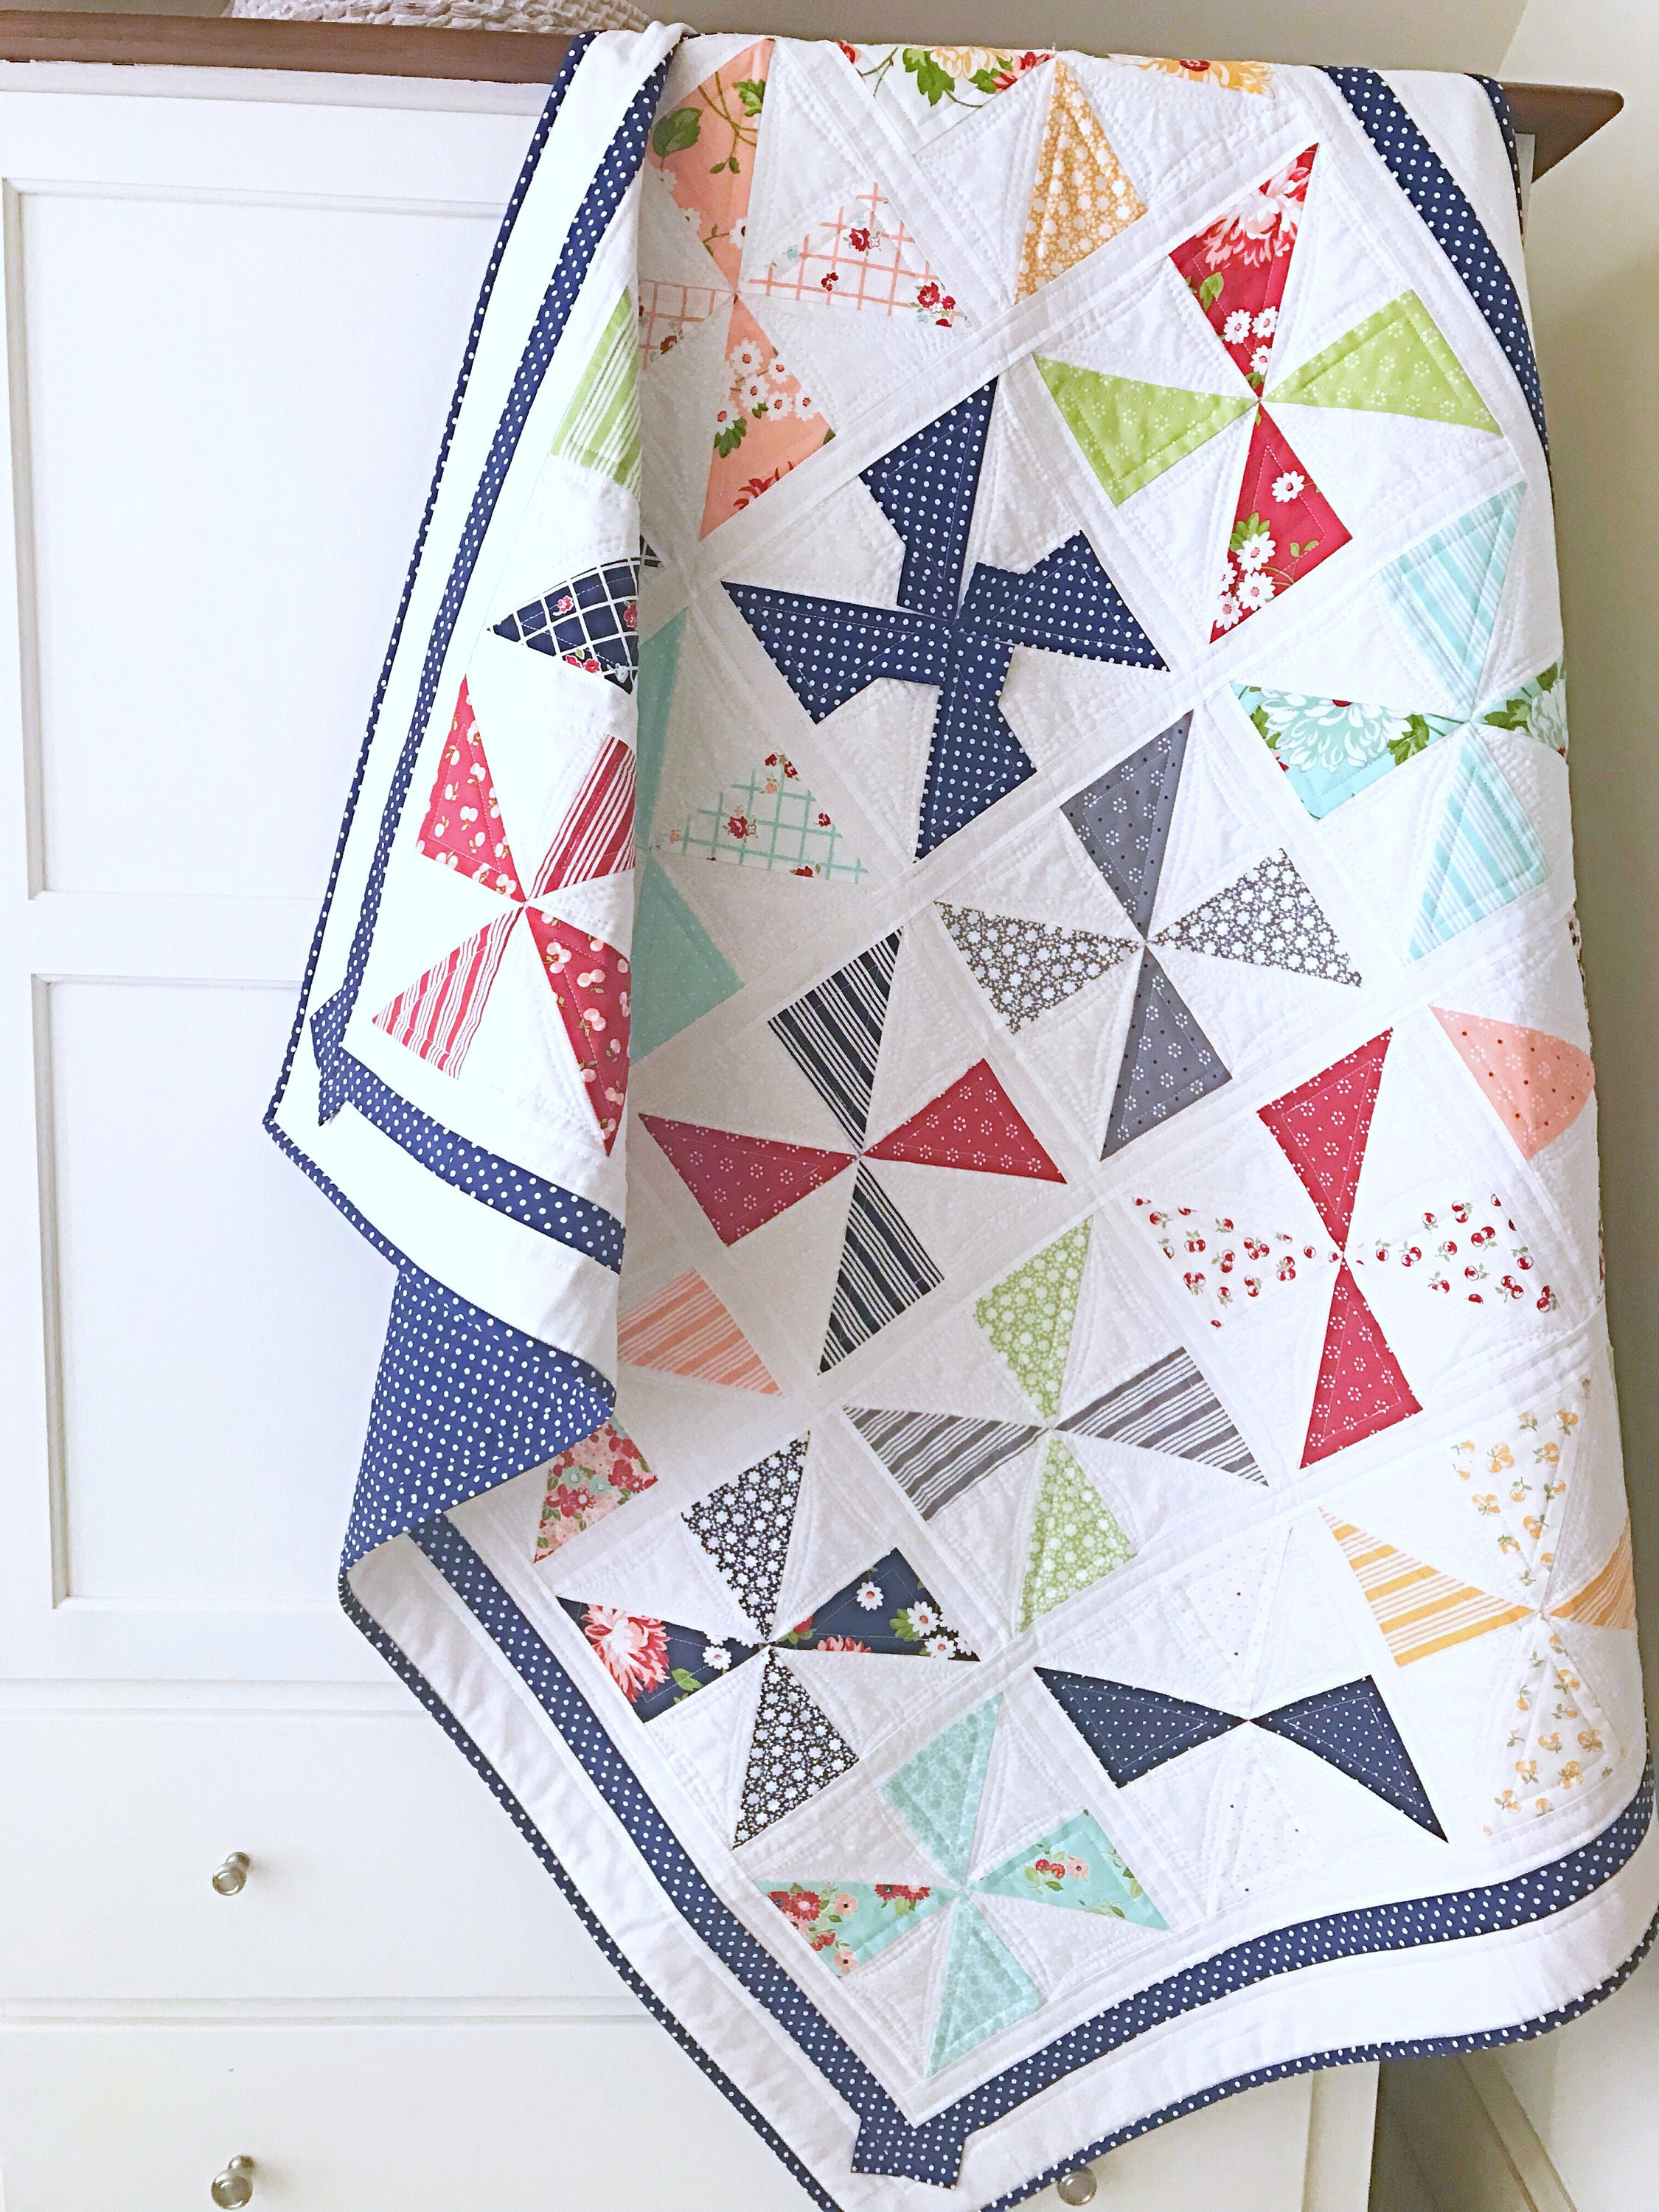 Baby Quilt Patterns.Easy Quilt Patterns Pdf Beginner Quilt Patterns Baby Quilt Pattern Pinwheel Quilt Pattern Christmas Quilt Pattern